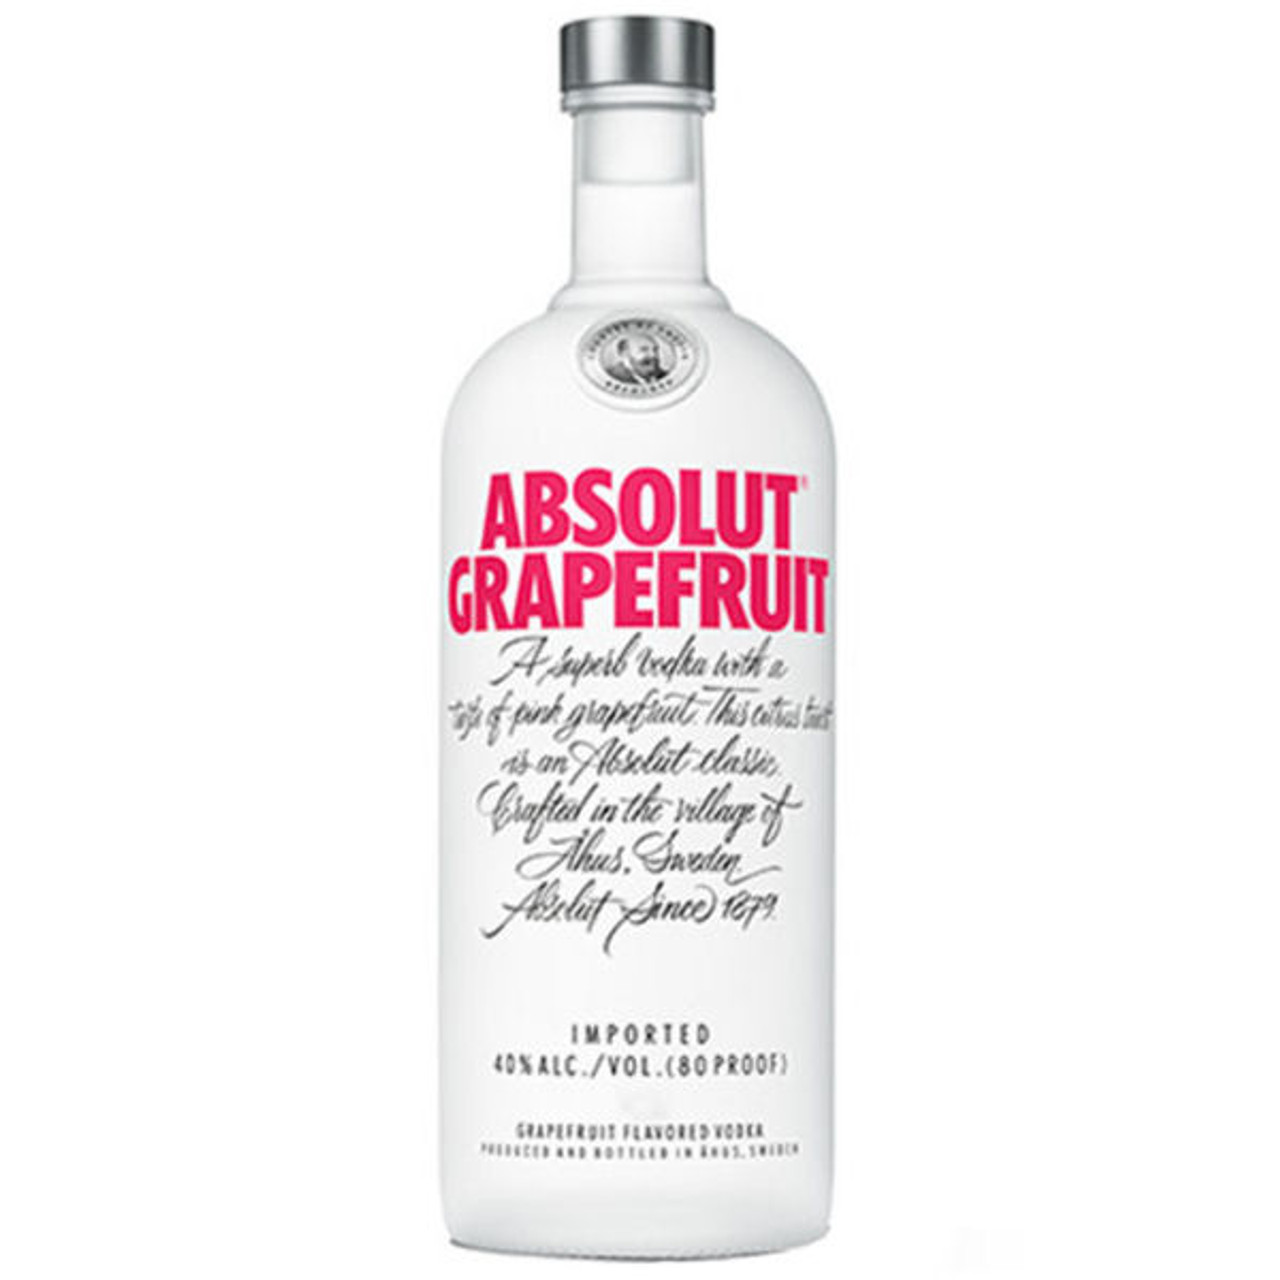 Absolut Grapefruit Swedish Grain Vodka 750ml